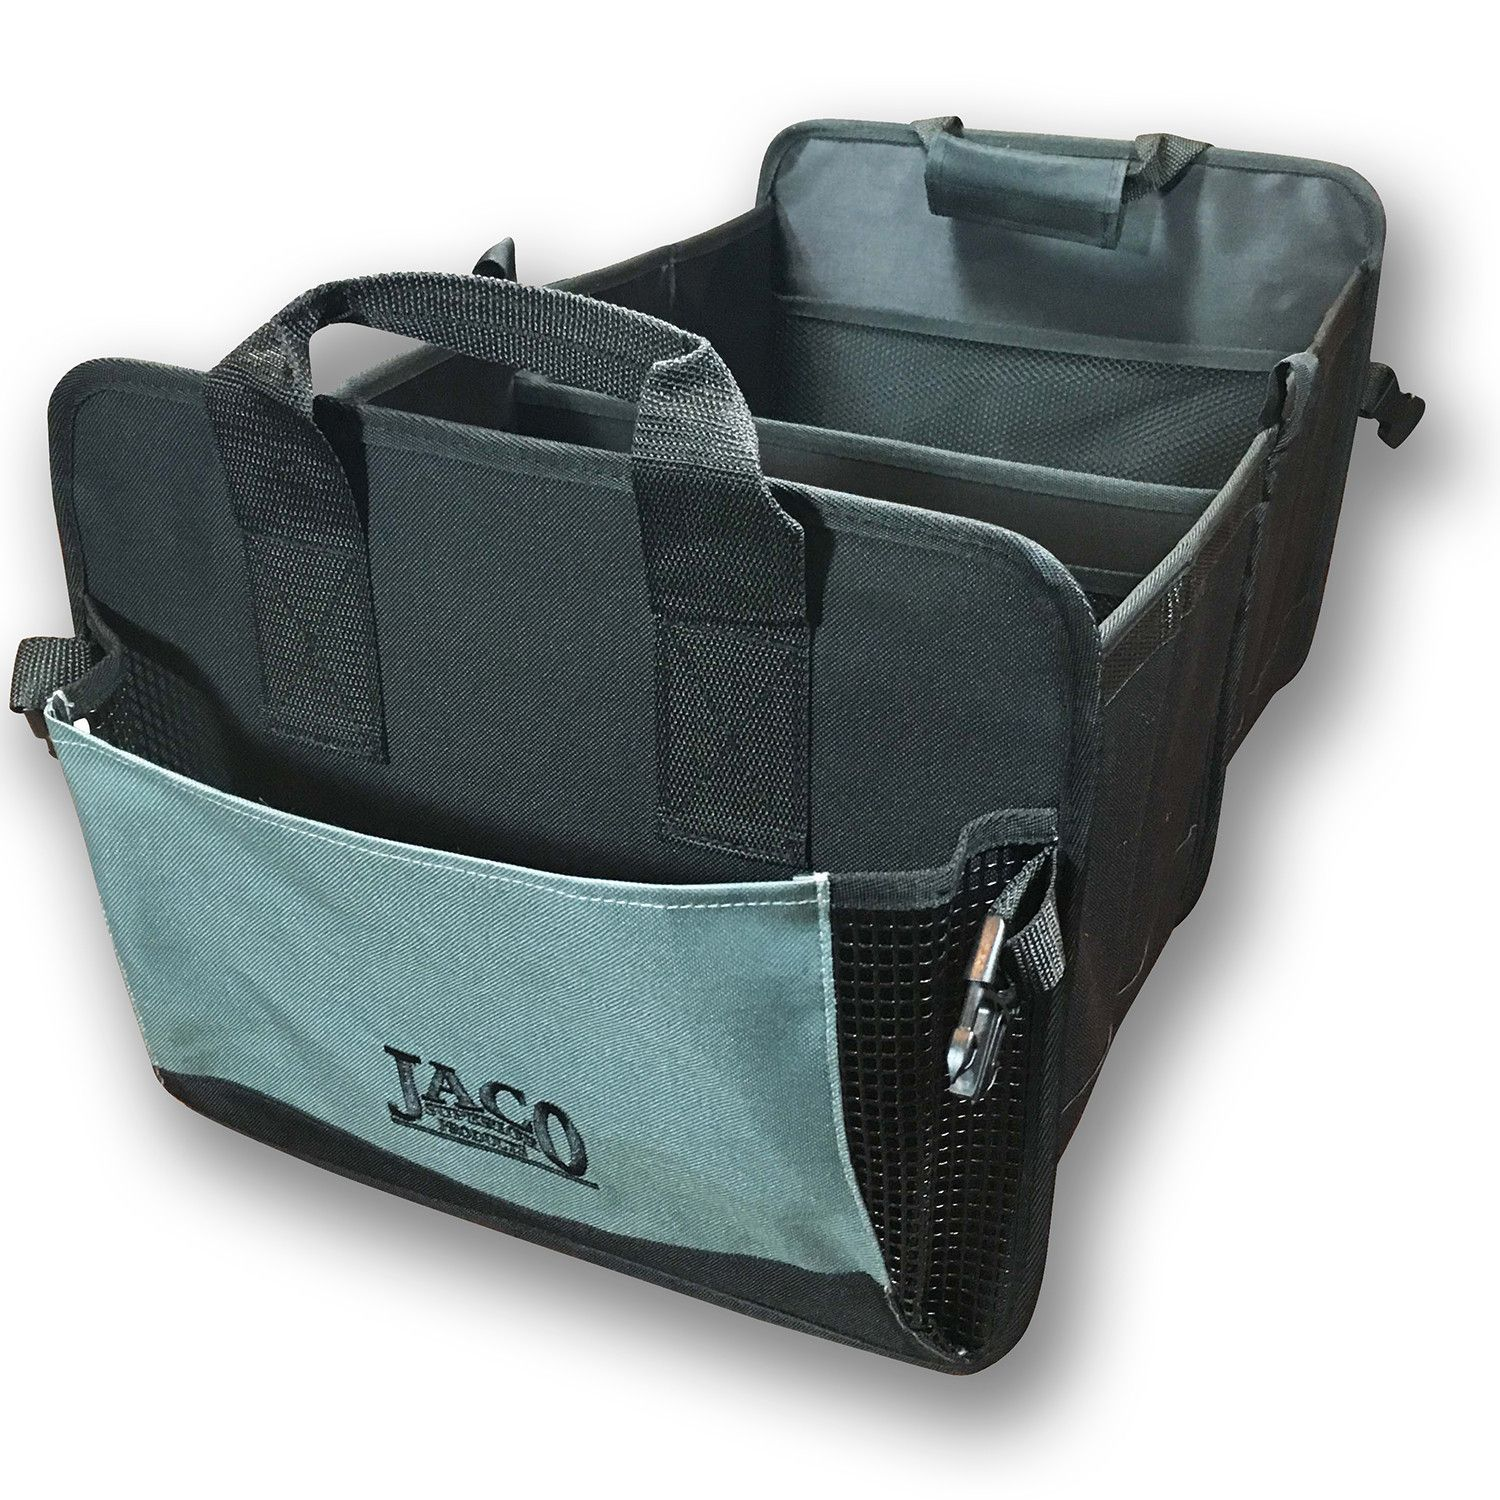 cargopro trunk organizer premium auto cargo storage container built to last from super durable oxford polyester fabric and strategically designed for optimal storage space 2 large main compartments